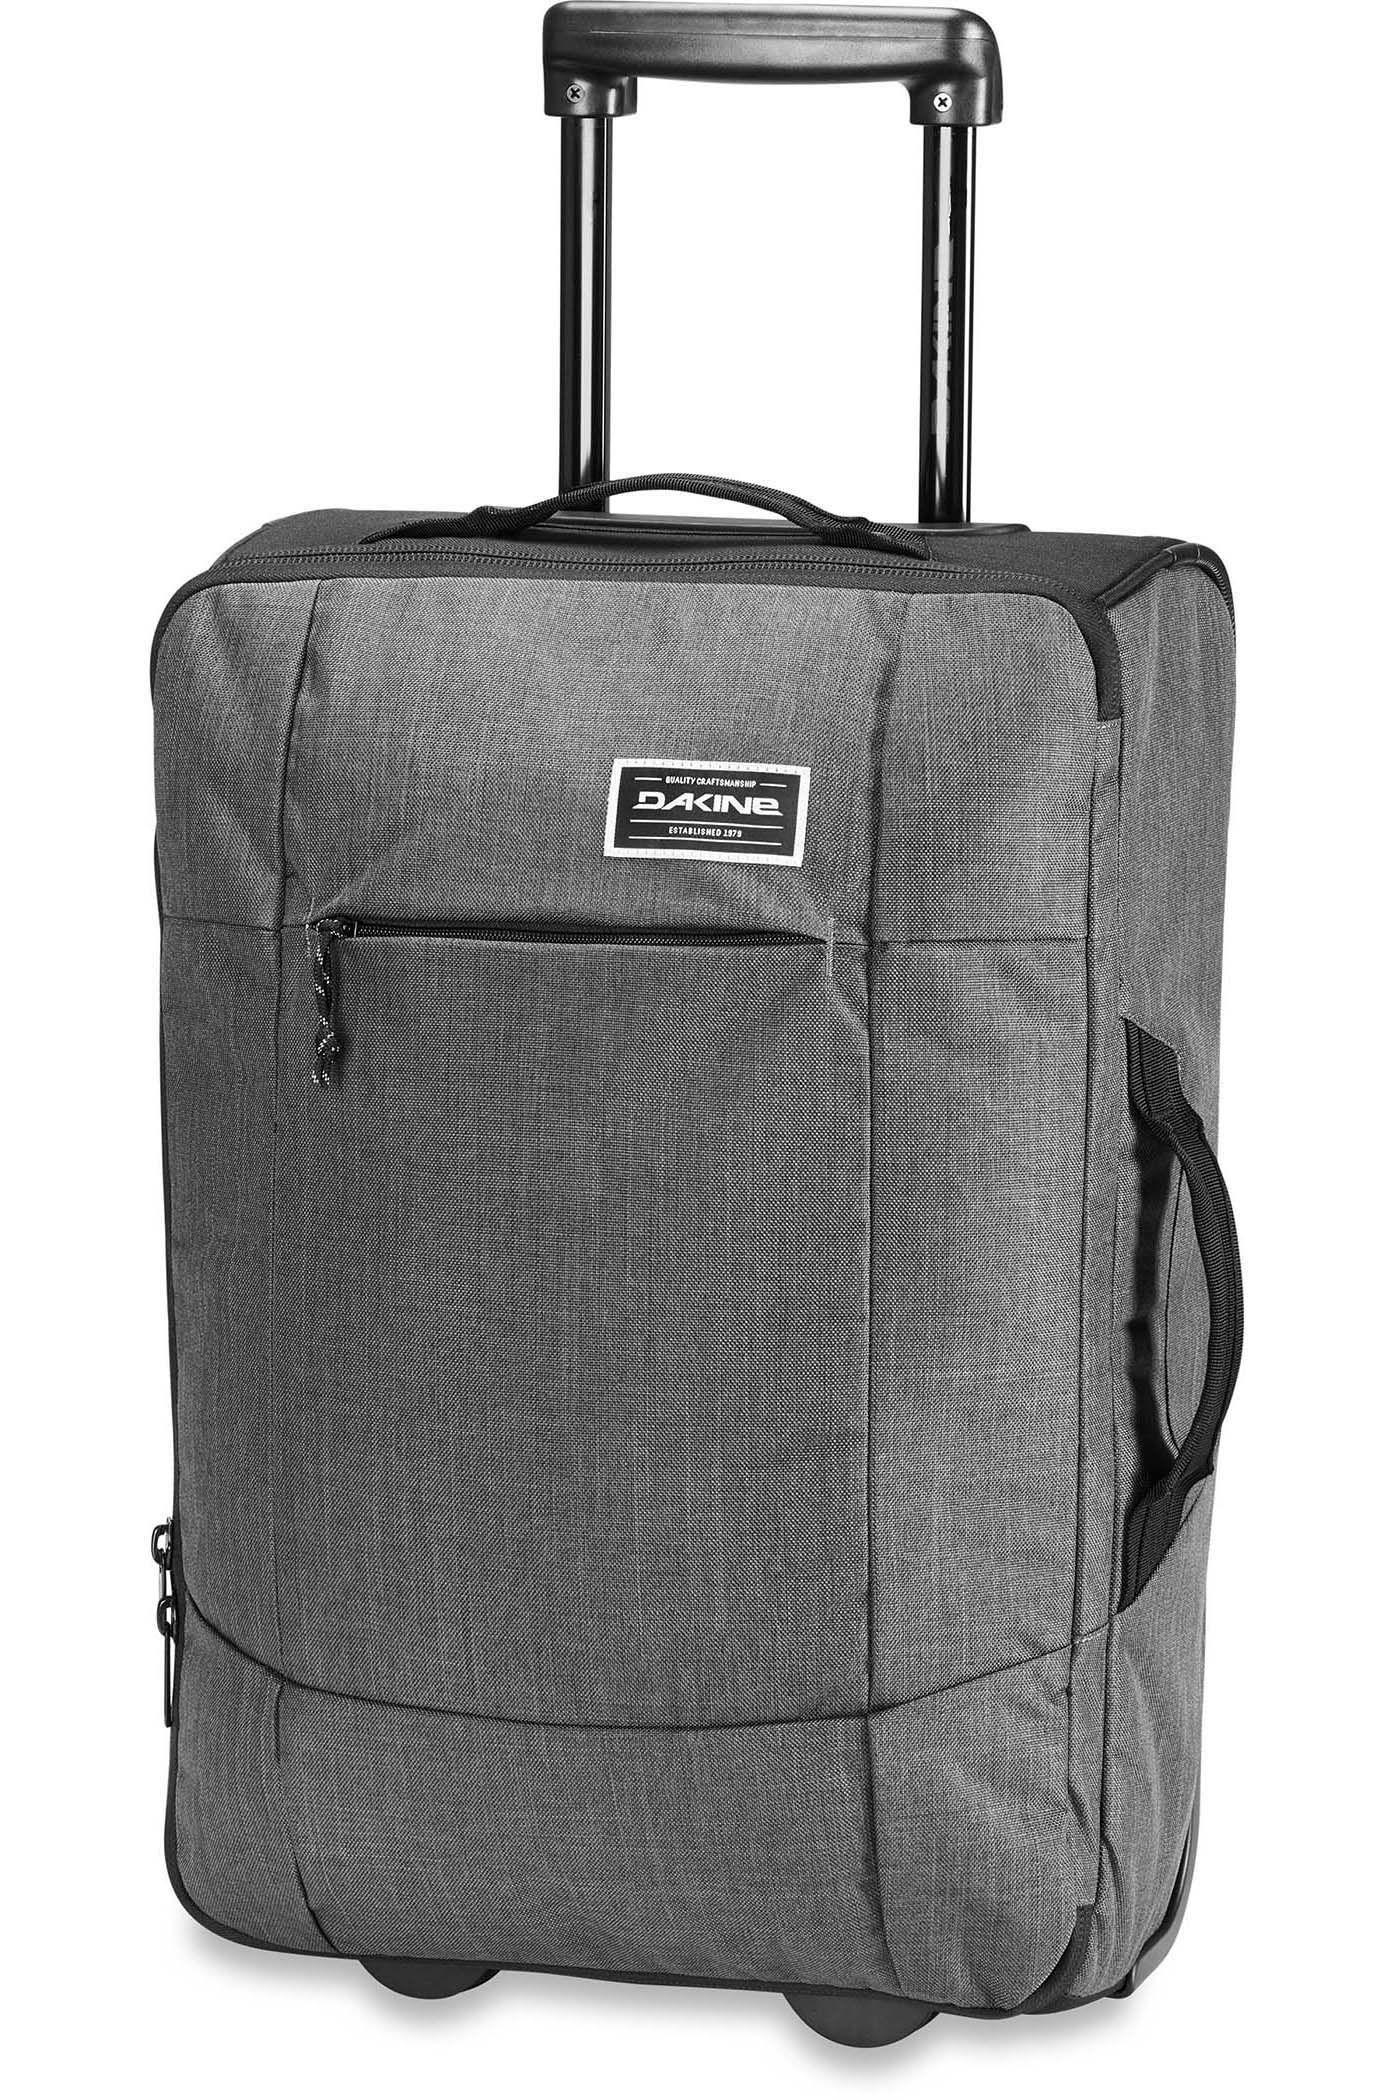 Mala Viagem Dakine CARRY ON EQ ROLLER 40L Carbon